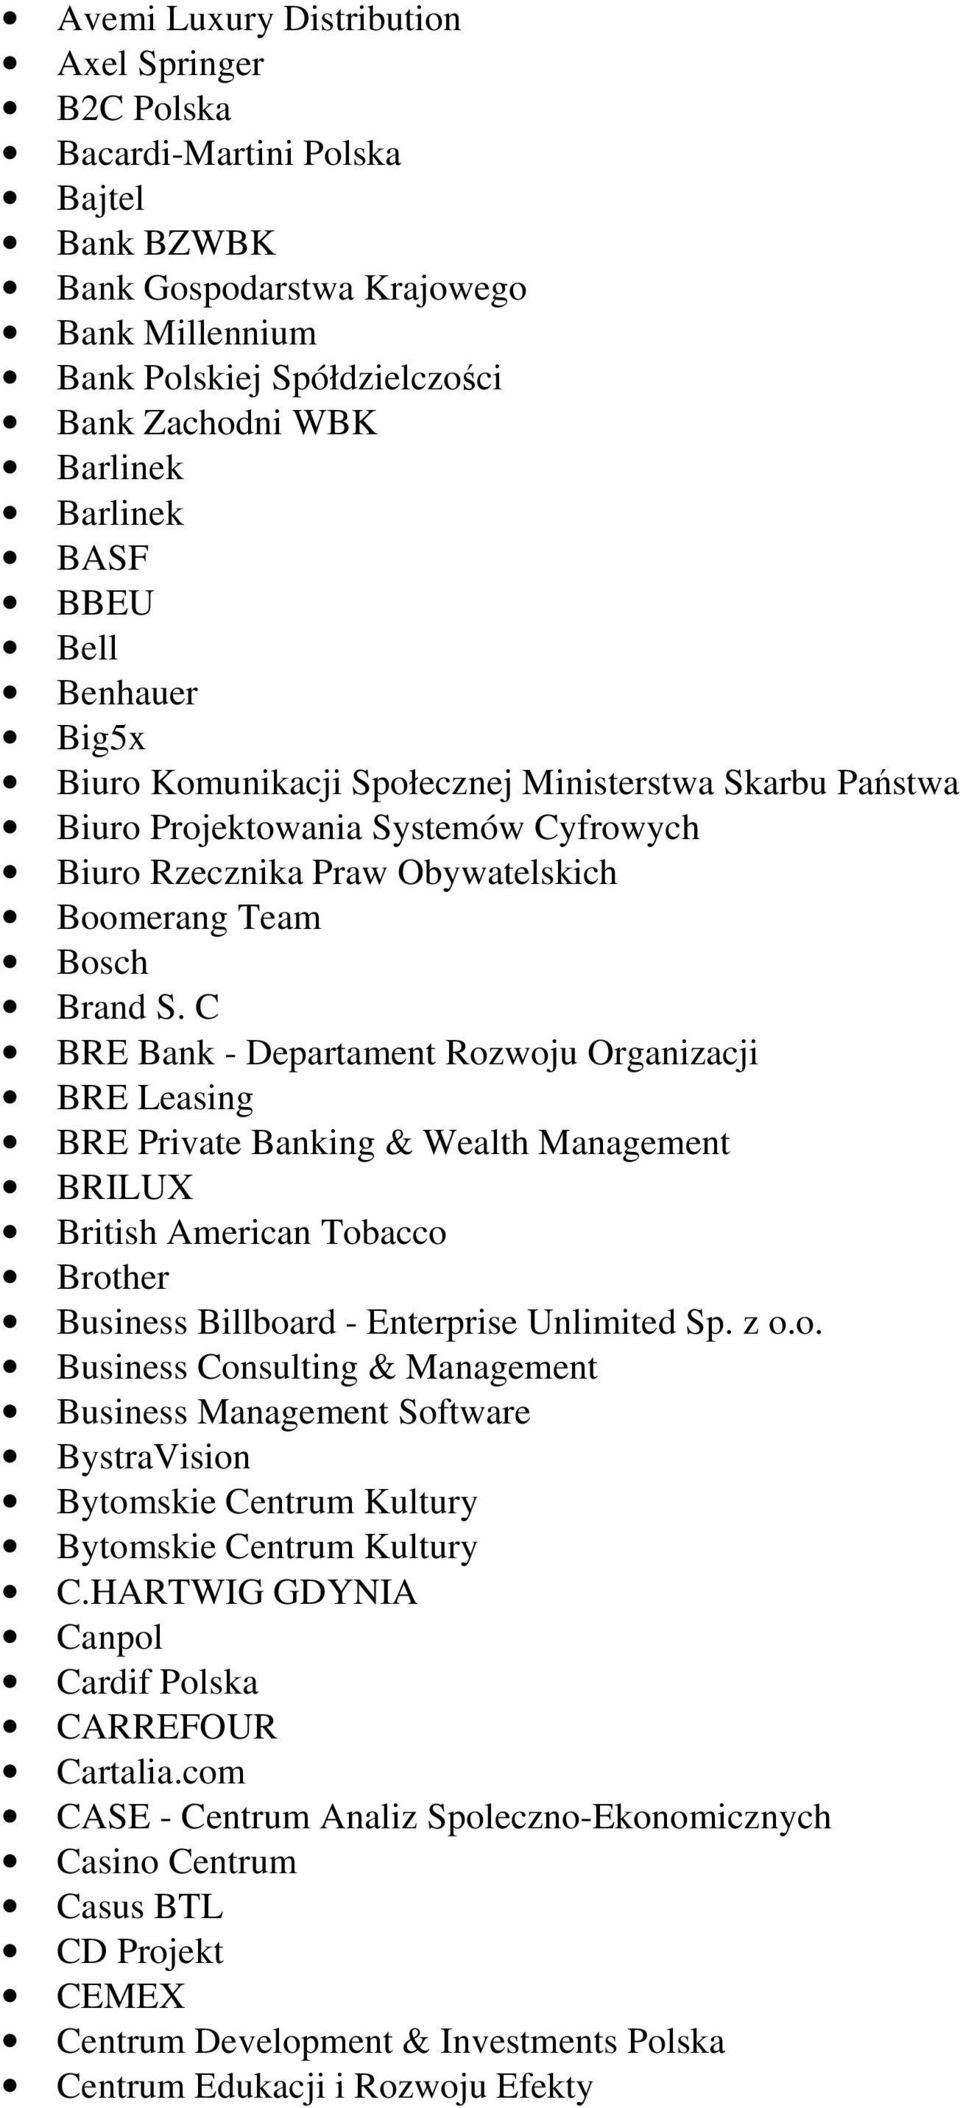 C BRE Bank - Departament Rozwoju Organizacji BRE Leasing BRE Private Banking & Wealth Management BRILUX British American Tobacco Brother Business Billboard - Enterprise Unlimited Sp. z o.o. Business Consulting & Management Business Management Software BystraVision Bytomskie Centrum Kultury Bytomskie Centrum Kultury C.